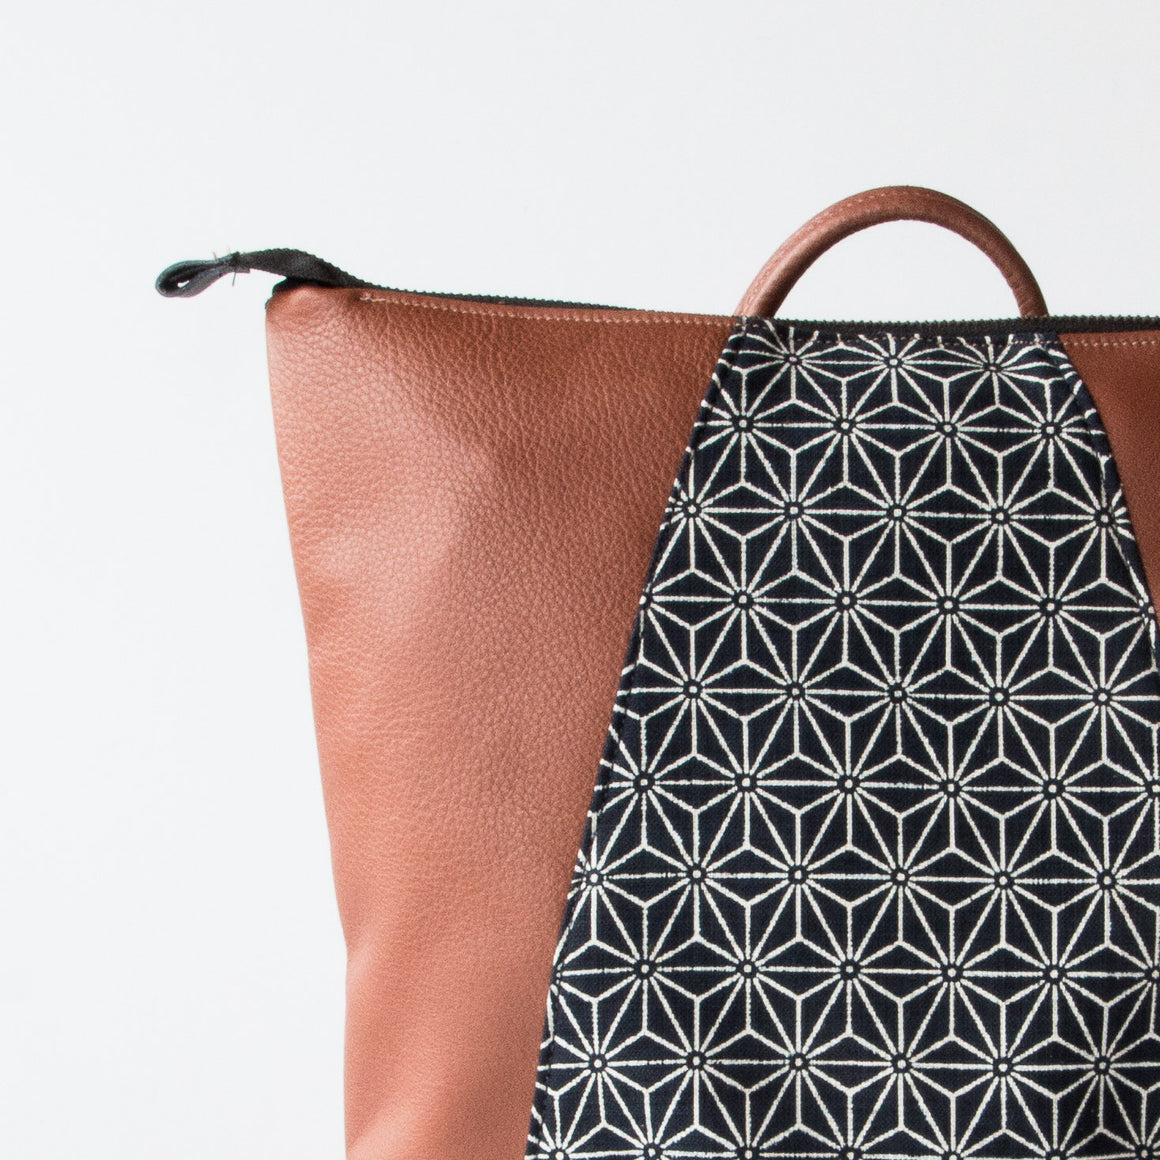 Caramel Leather - Hobart - Backpack / Laptop Bag - Recycled Leather & Japanese Fabric - Sold by Chic & Basta